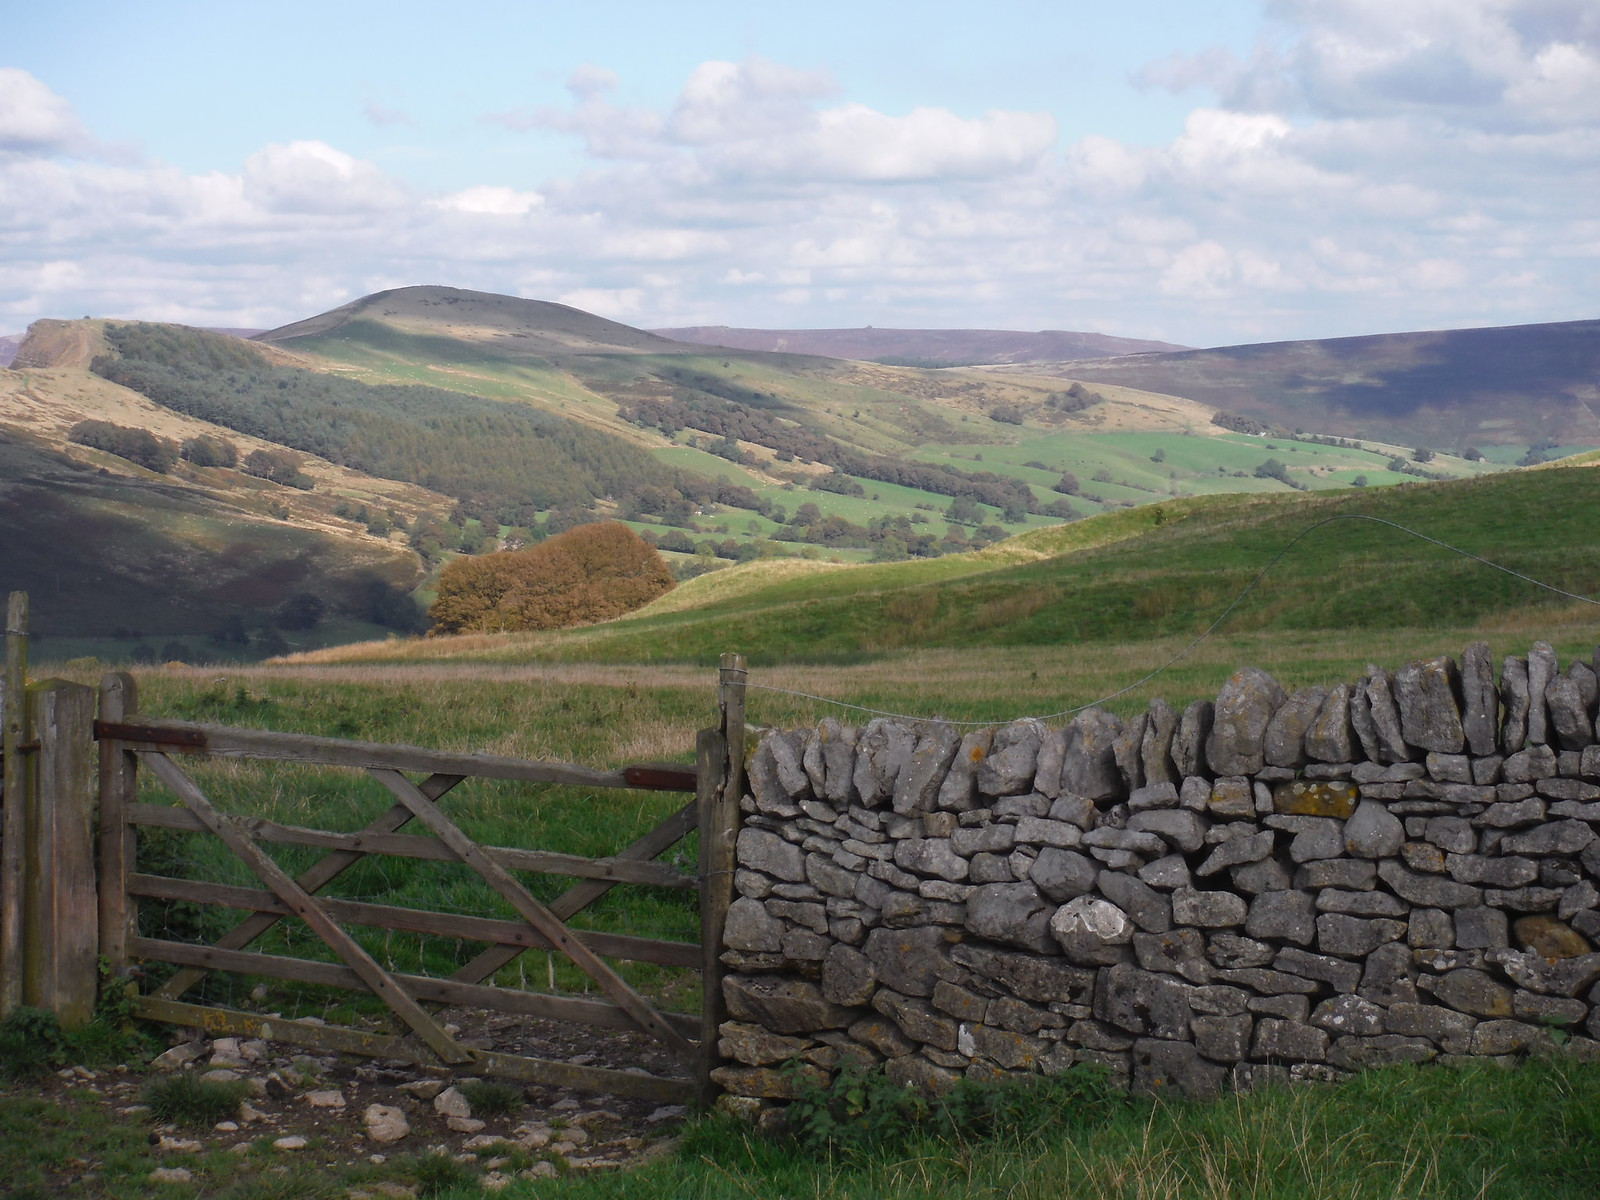 Back Tor, Lose Hill, Derwent Edge SWC Walk 302 - Bamford to Edale (via Win Hill and Great Ridge) [Castleton Alternatives]